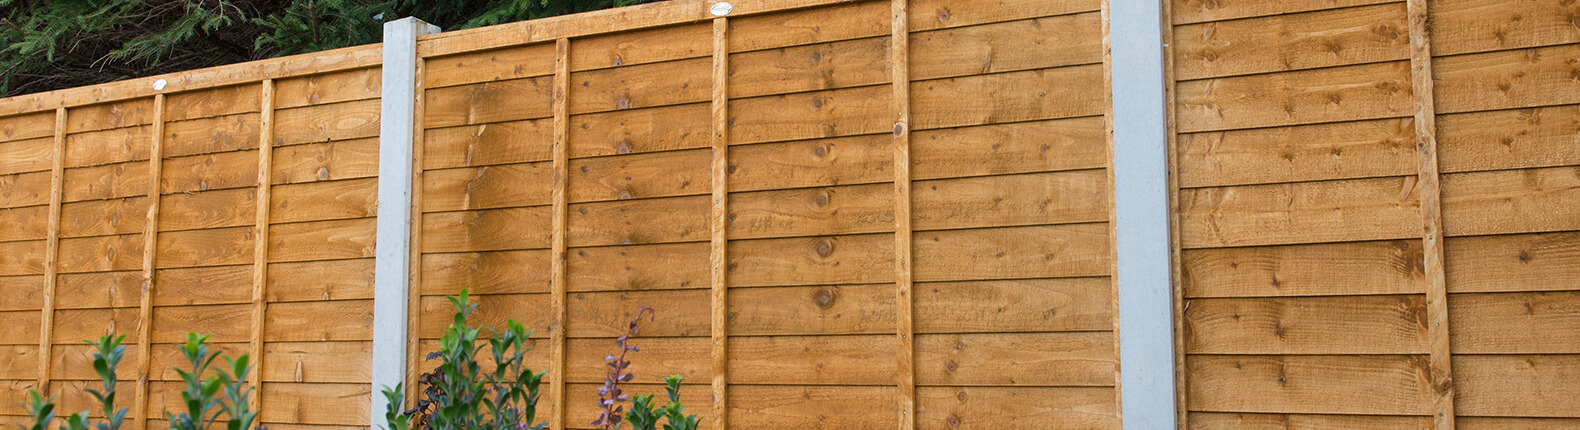 How to Choose the Best Fence for Your Garden - AVS Fencing